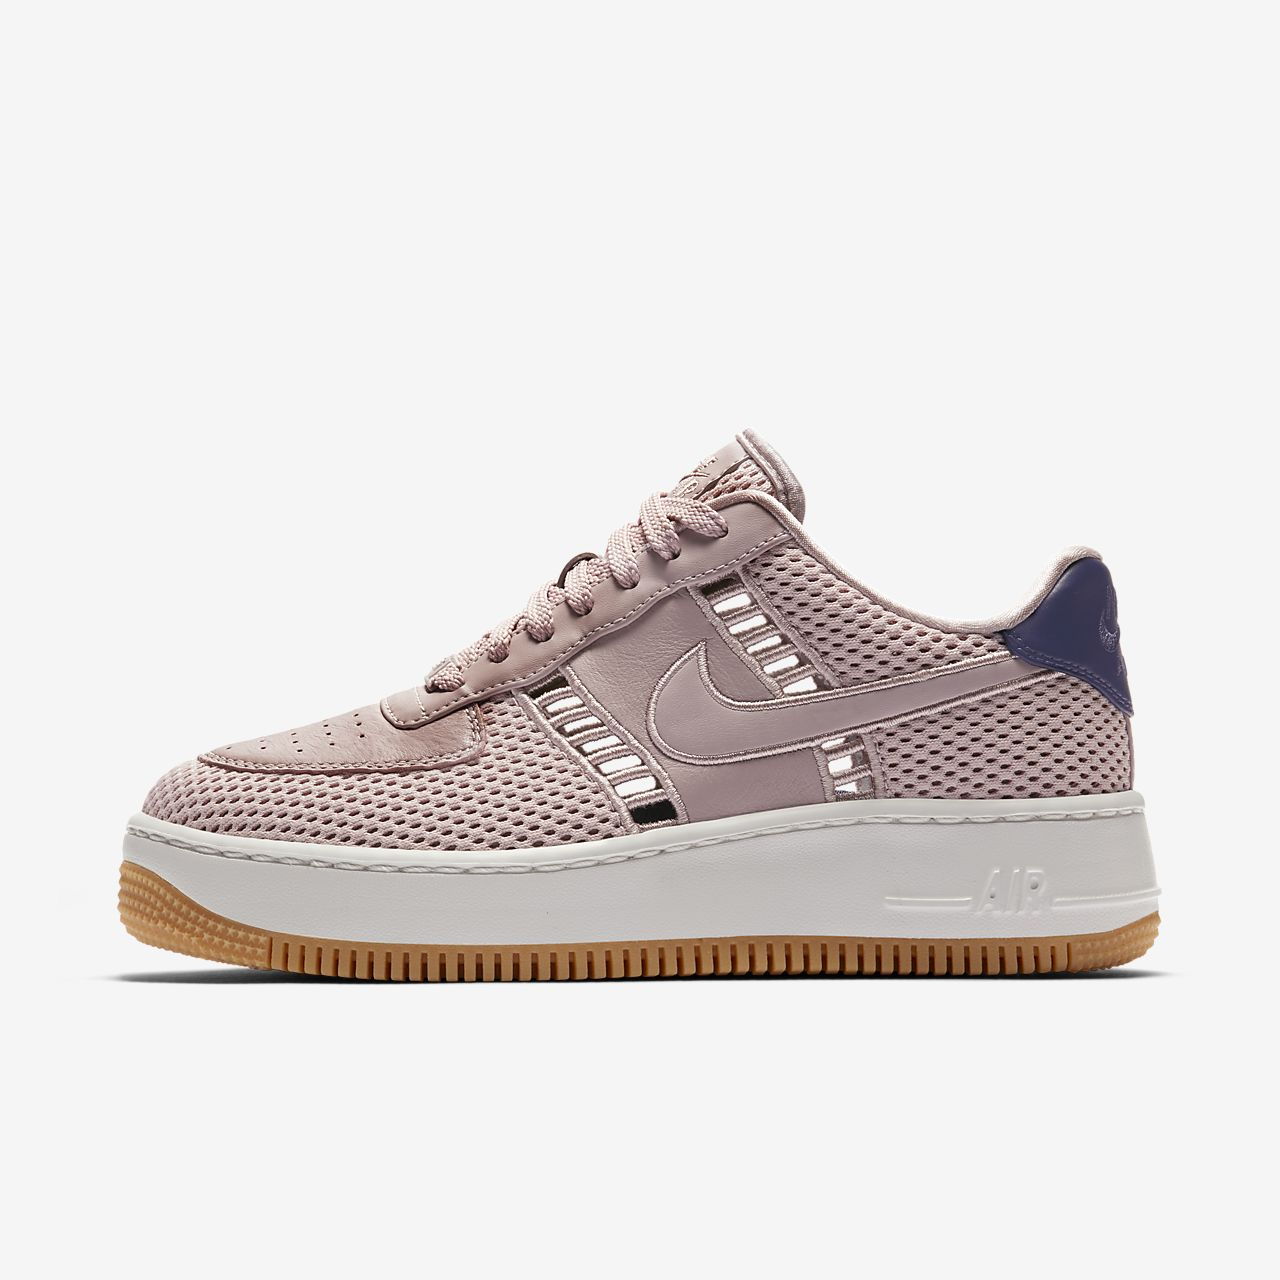 Acquista nike air force 1 donna rosa OFF64% sconti